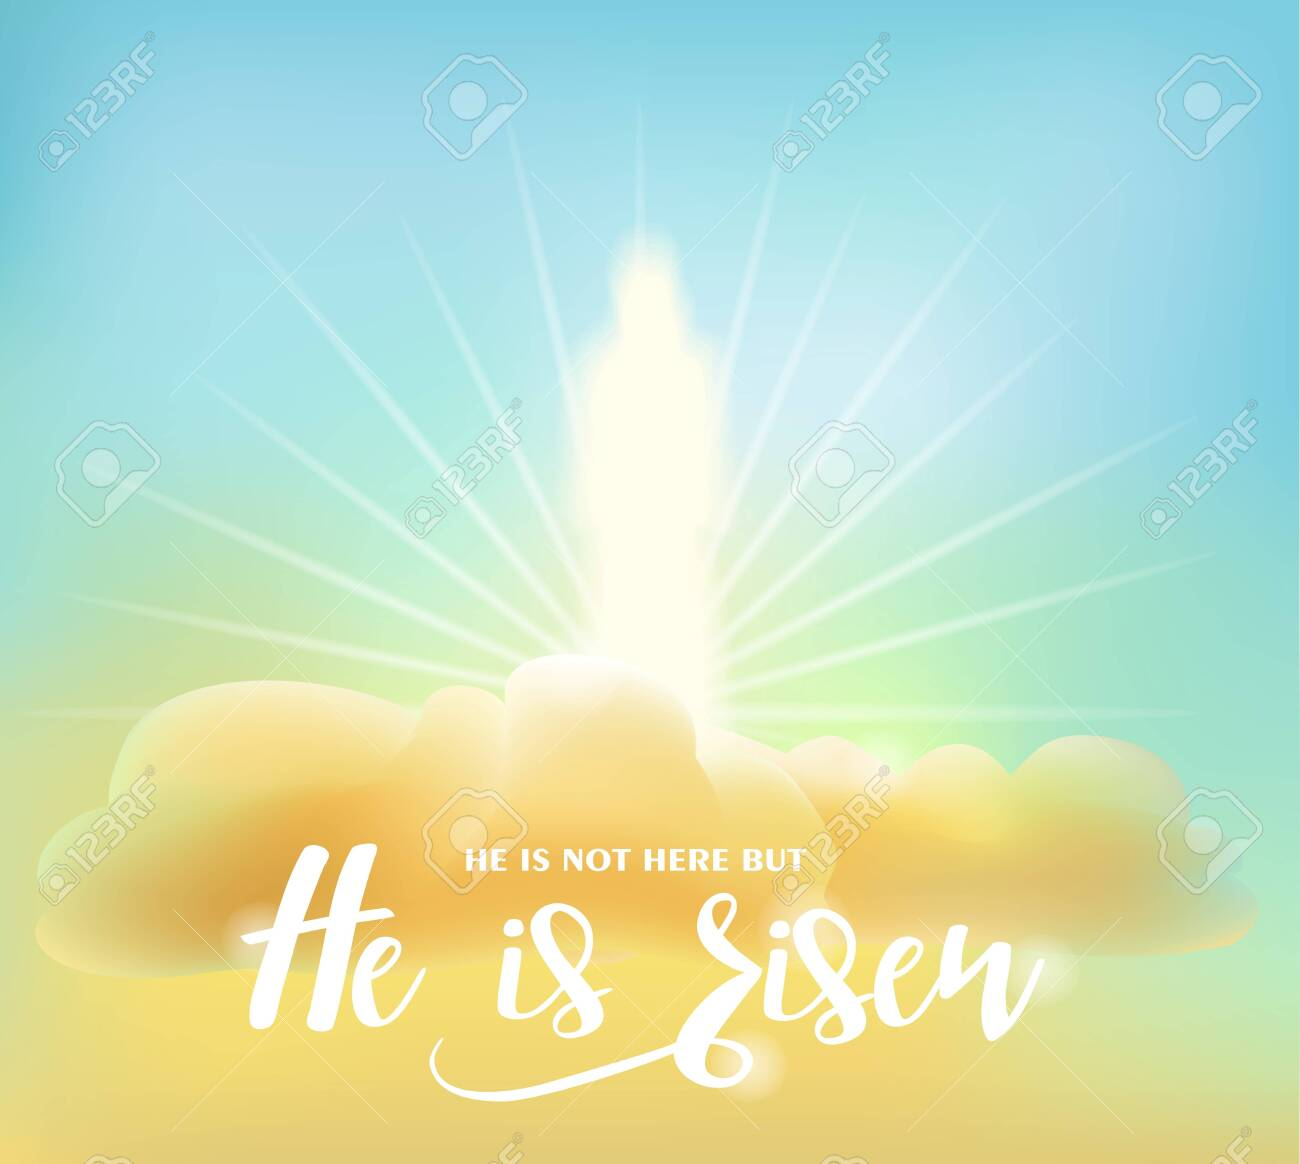 Easter card. Glowing figure of Christ on clouds in the morning sky. Text: He is not here but He is risen. Vector illustration - 144783343